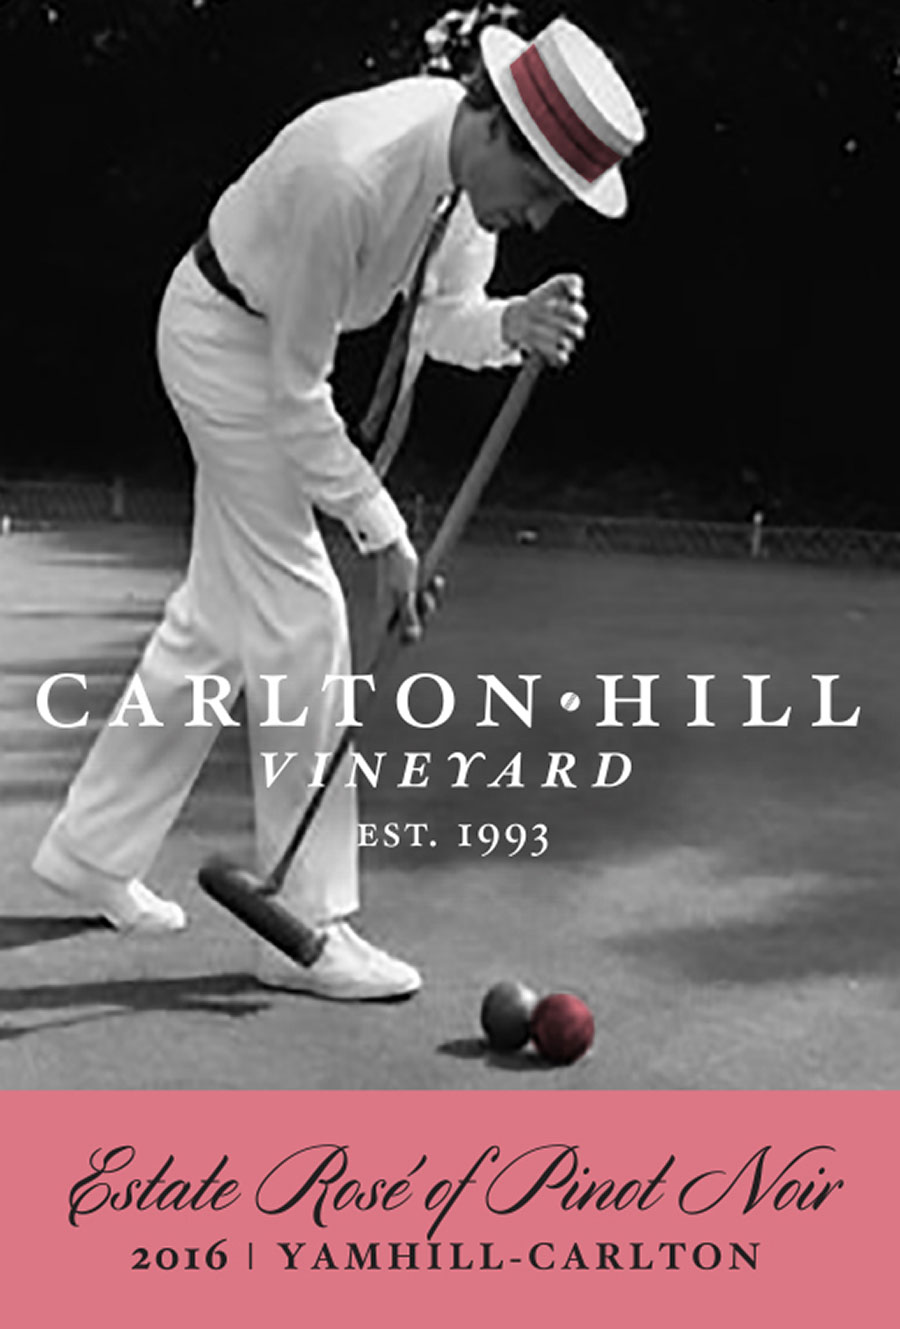 Carlton Hill Estate Rosé of Pinot noir 2016